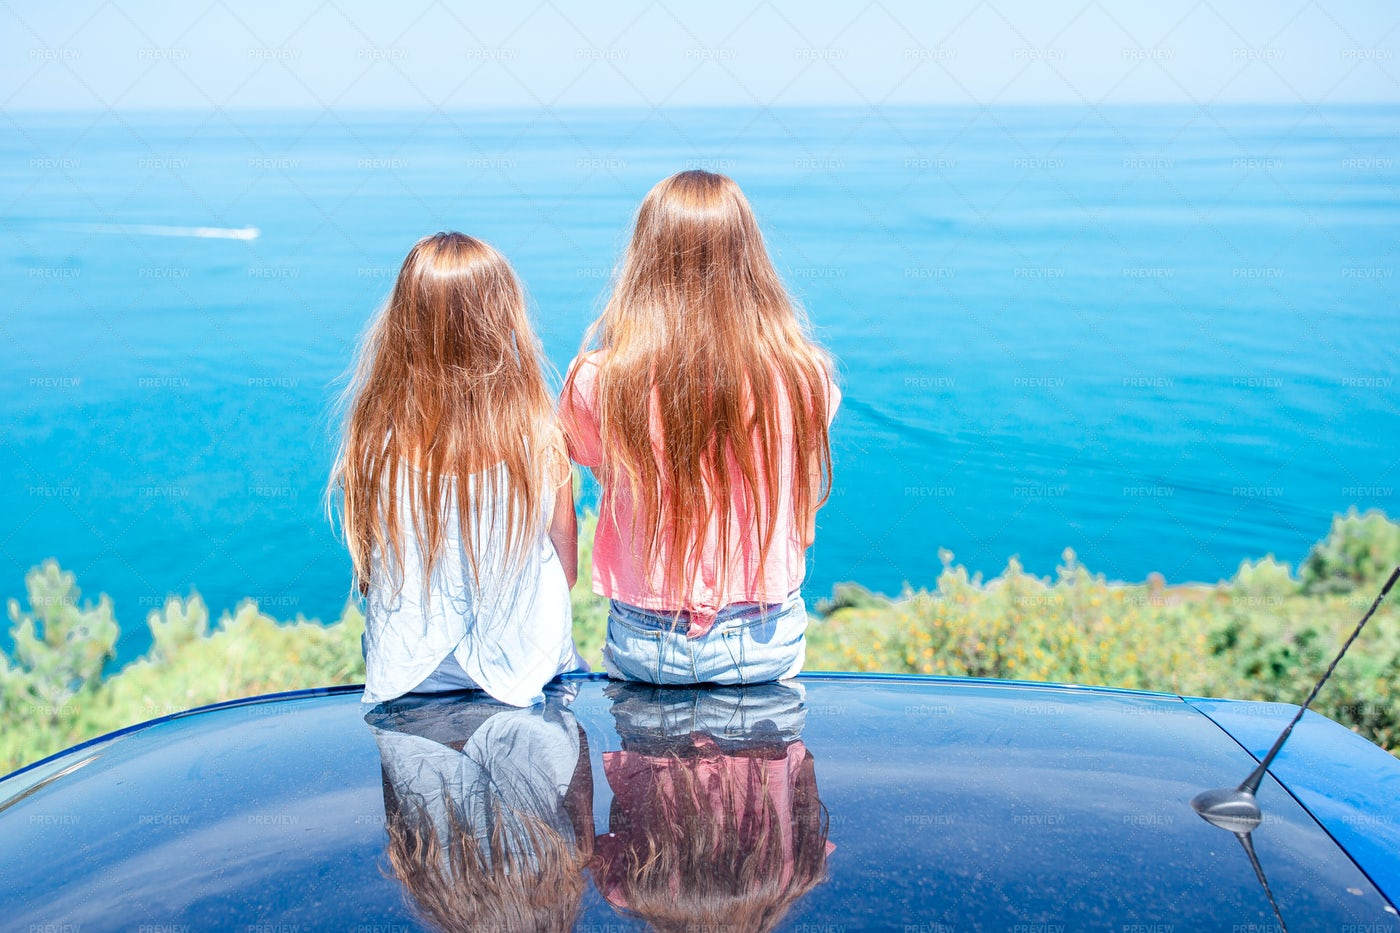 Sisters Sit On Car Roof: Stock Photos